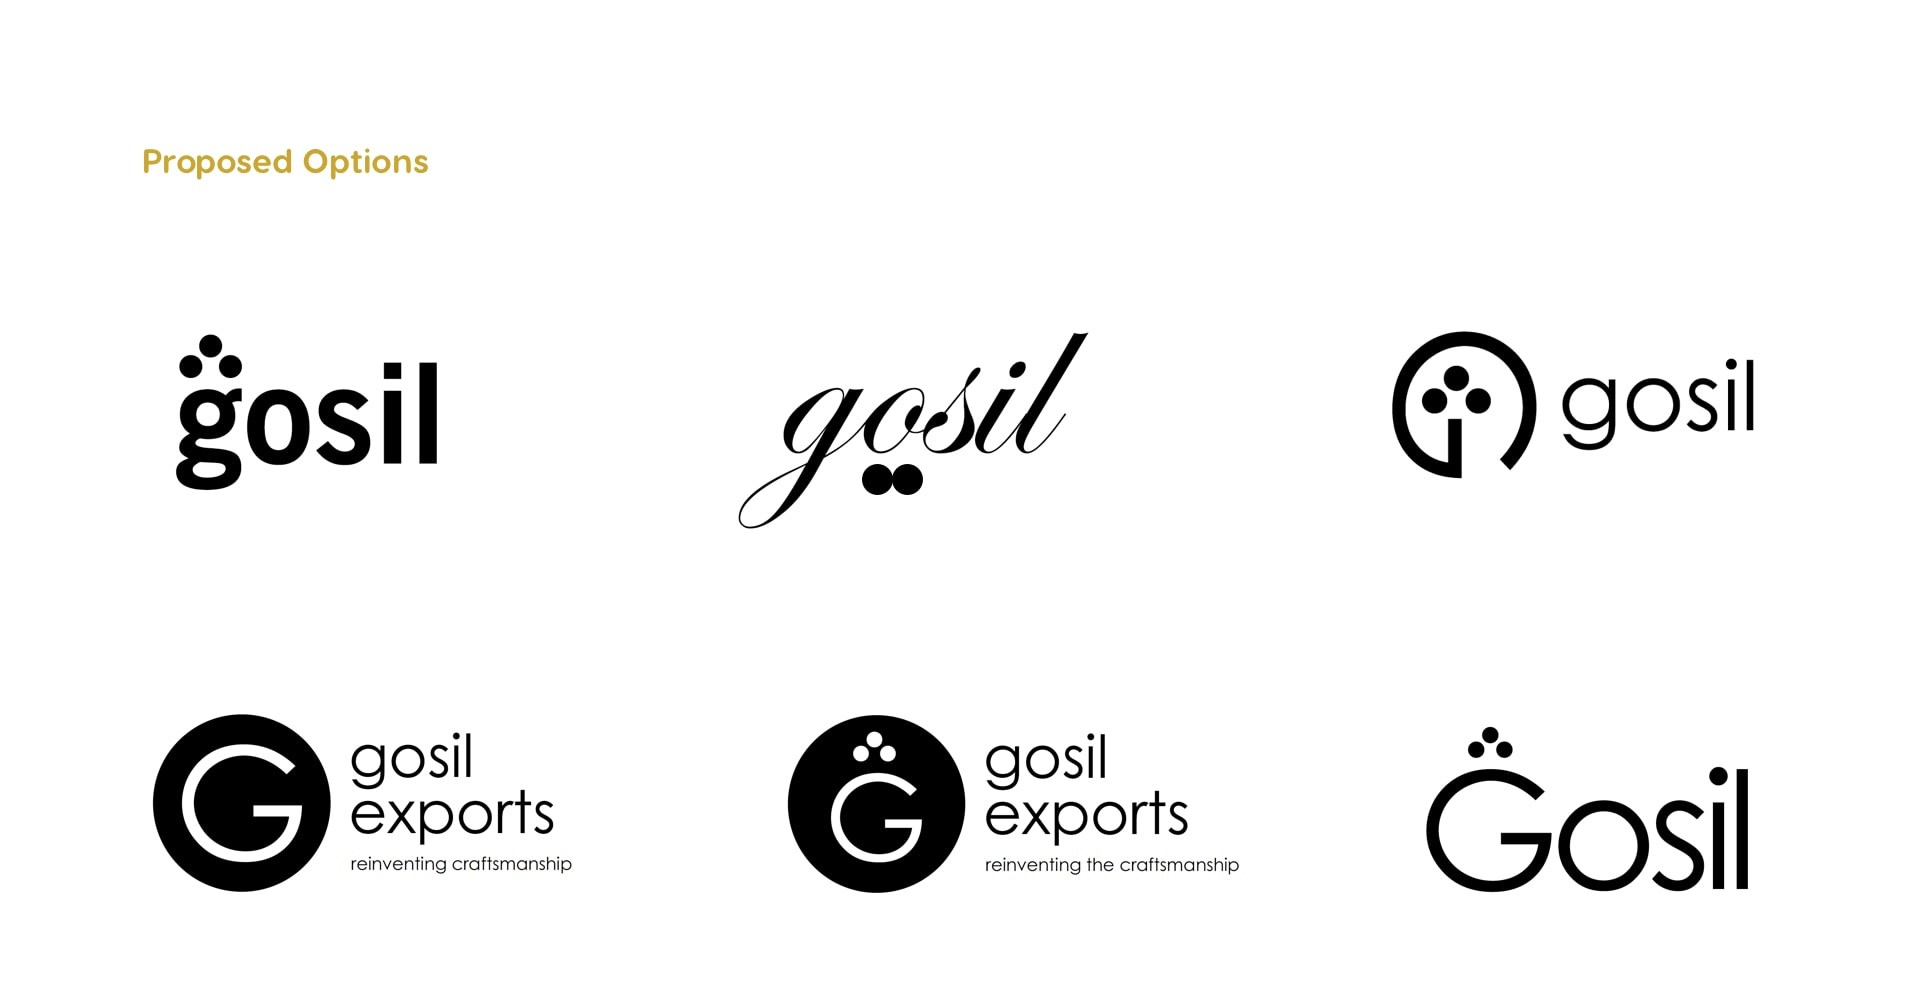 Proposed logo options